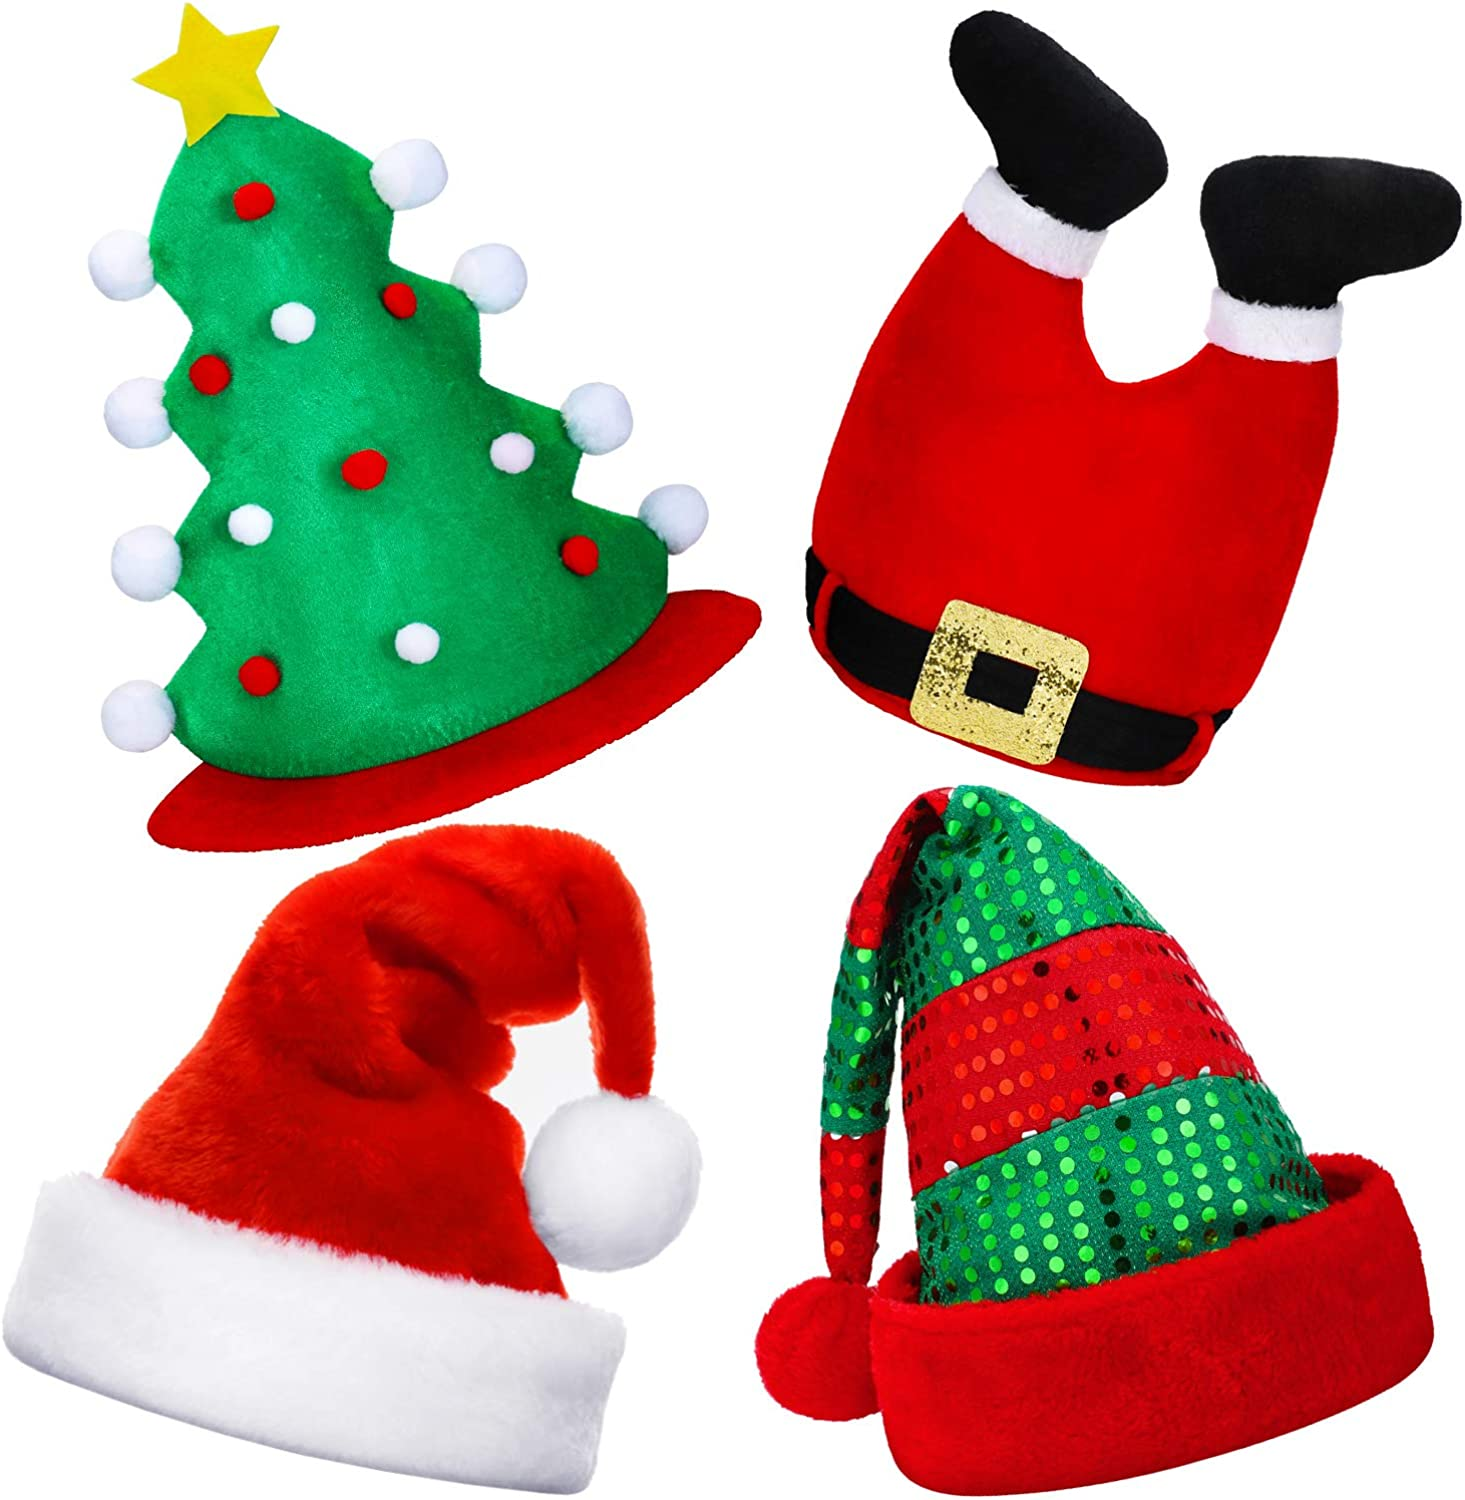 Christmas Hat Novelty XMAS Office Party Festive Fancy Gift Dress Accessories Lot